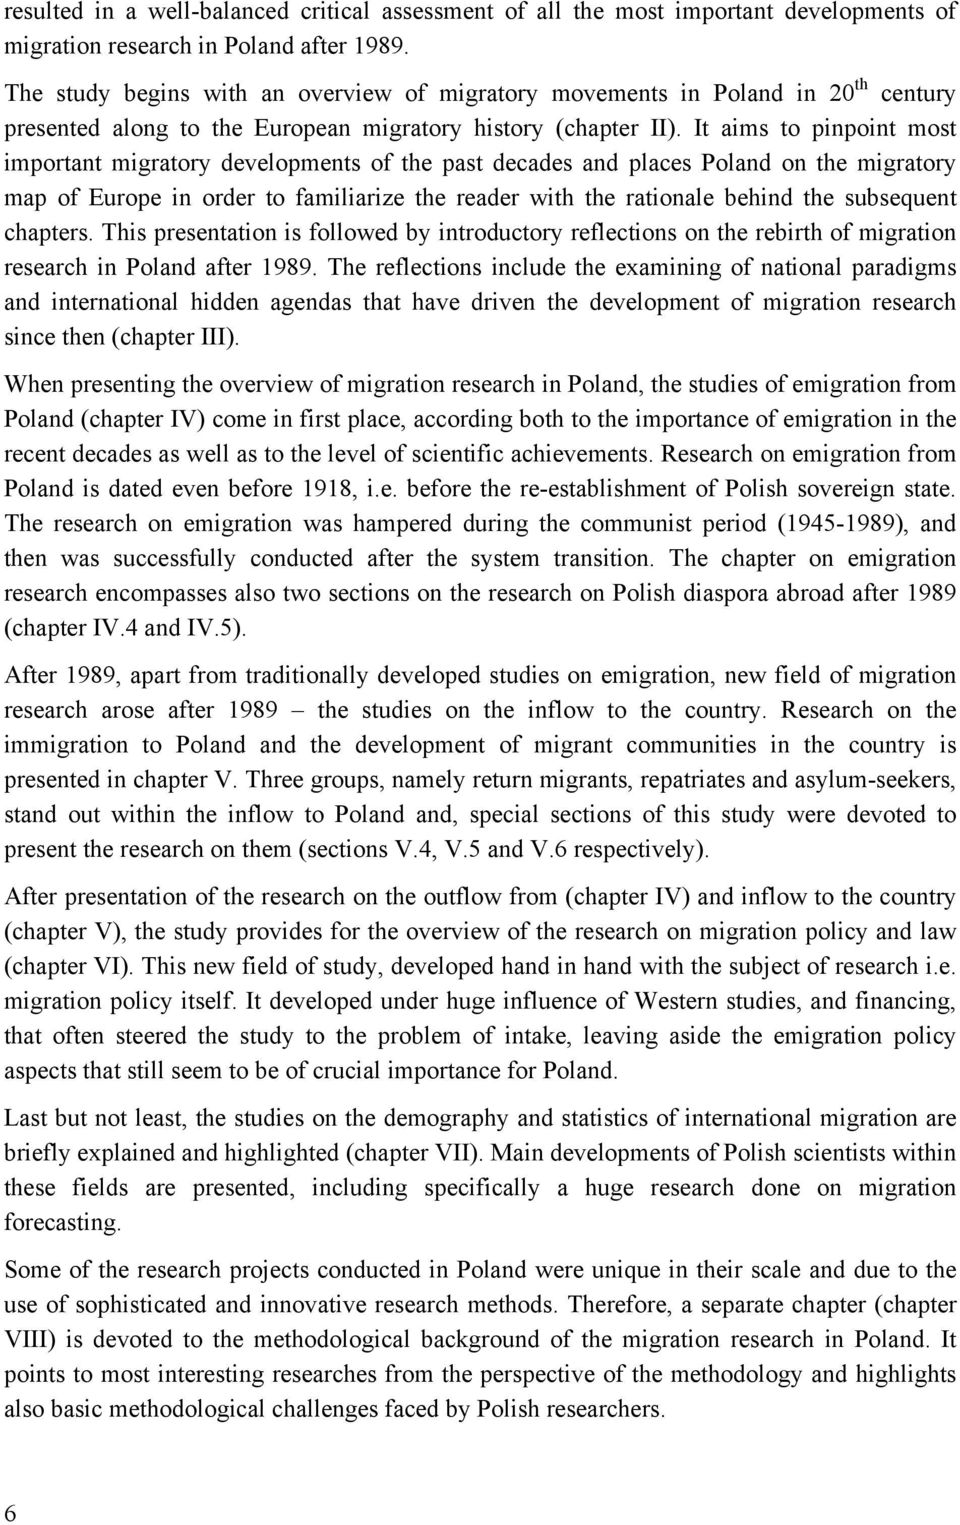 It aims to pinpoint most important migratory developments of the past decades and places Poland on the migratory map of Europe in order to familiarize the reader with the rationale behind the